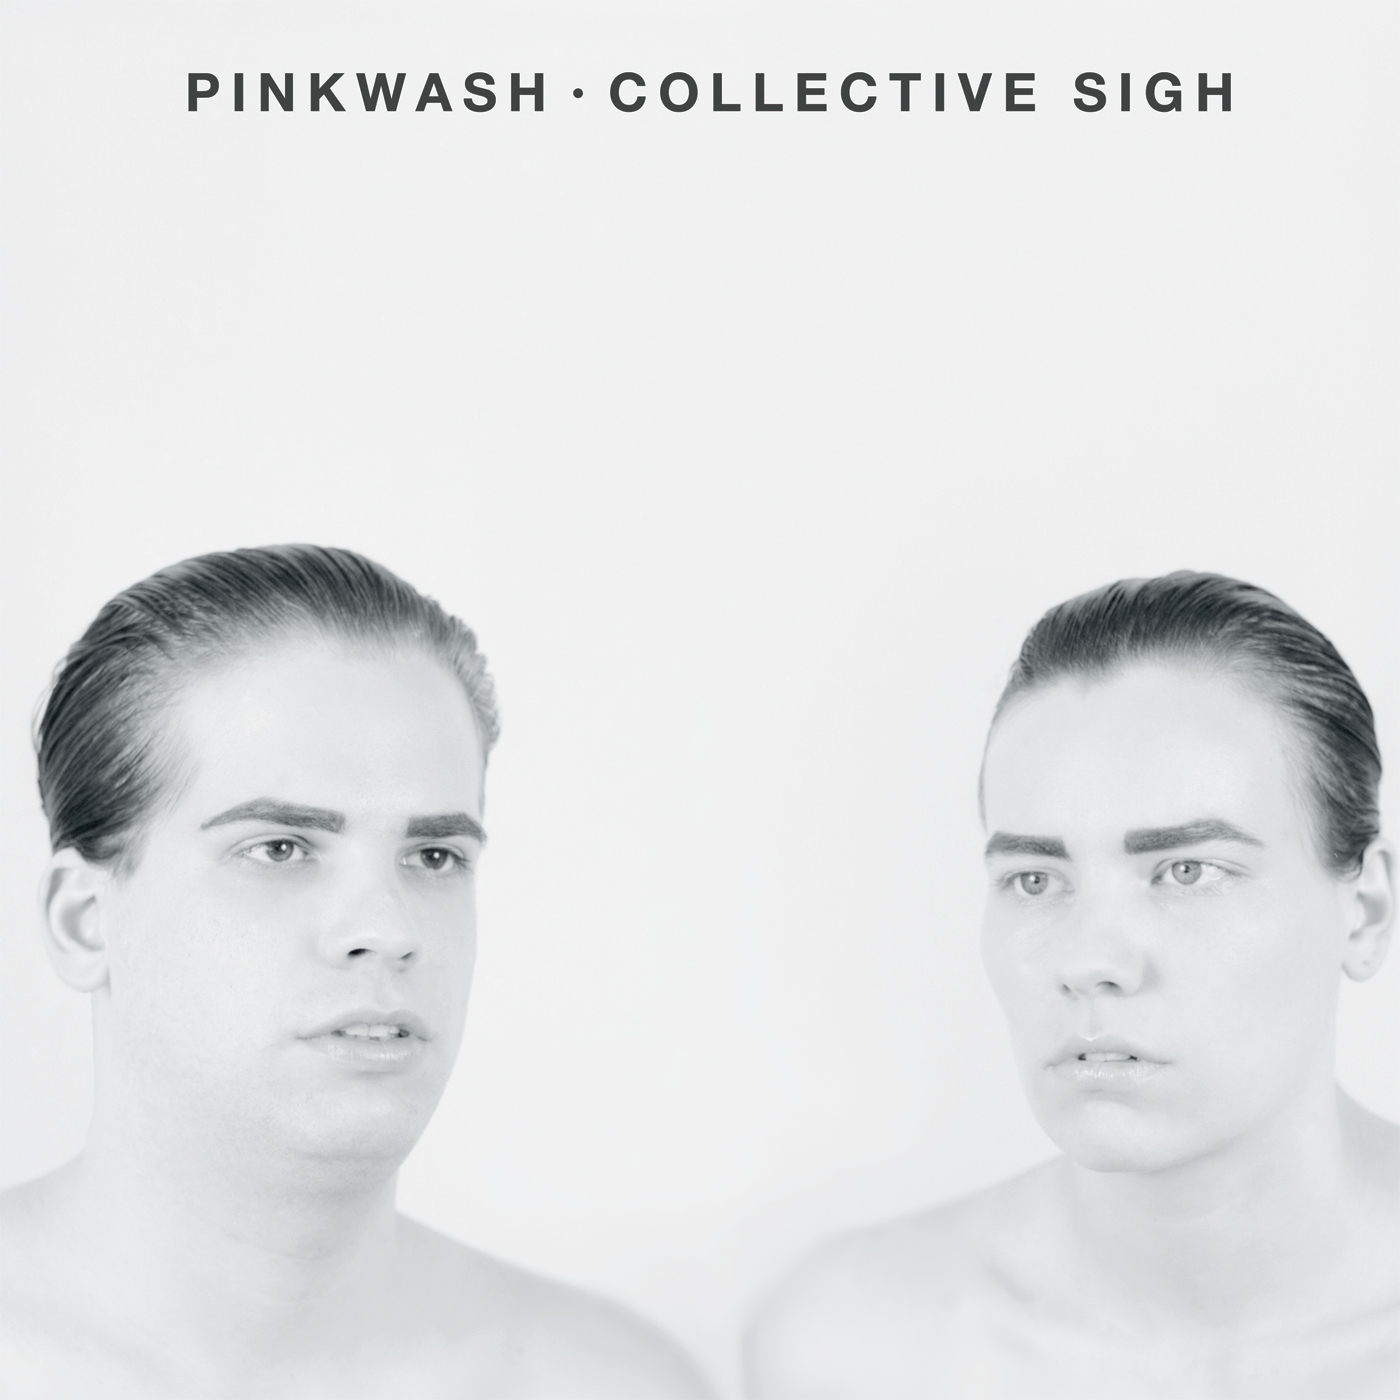 pinkwash collective sigh stream don giovanni Stream: Prog punk duo Pinkwash's full length debut Collective Sigh